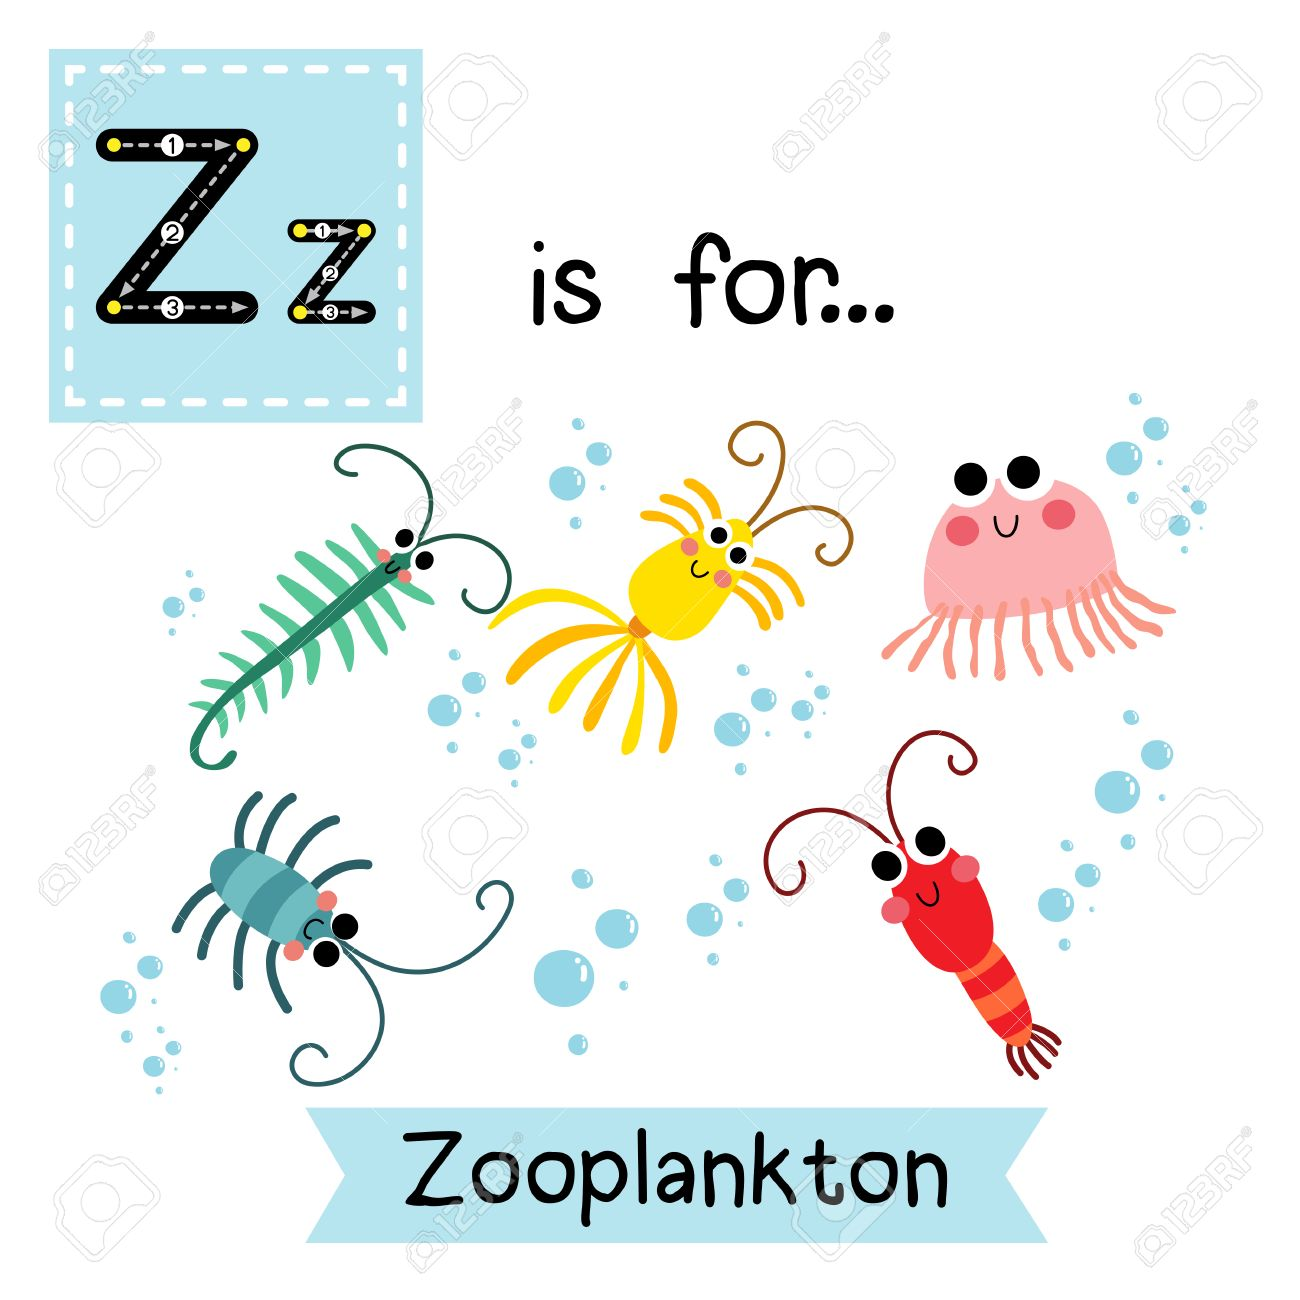 Zooplankton clipart 3 » Clipart Station.